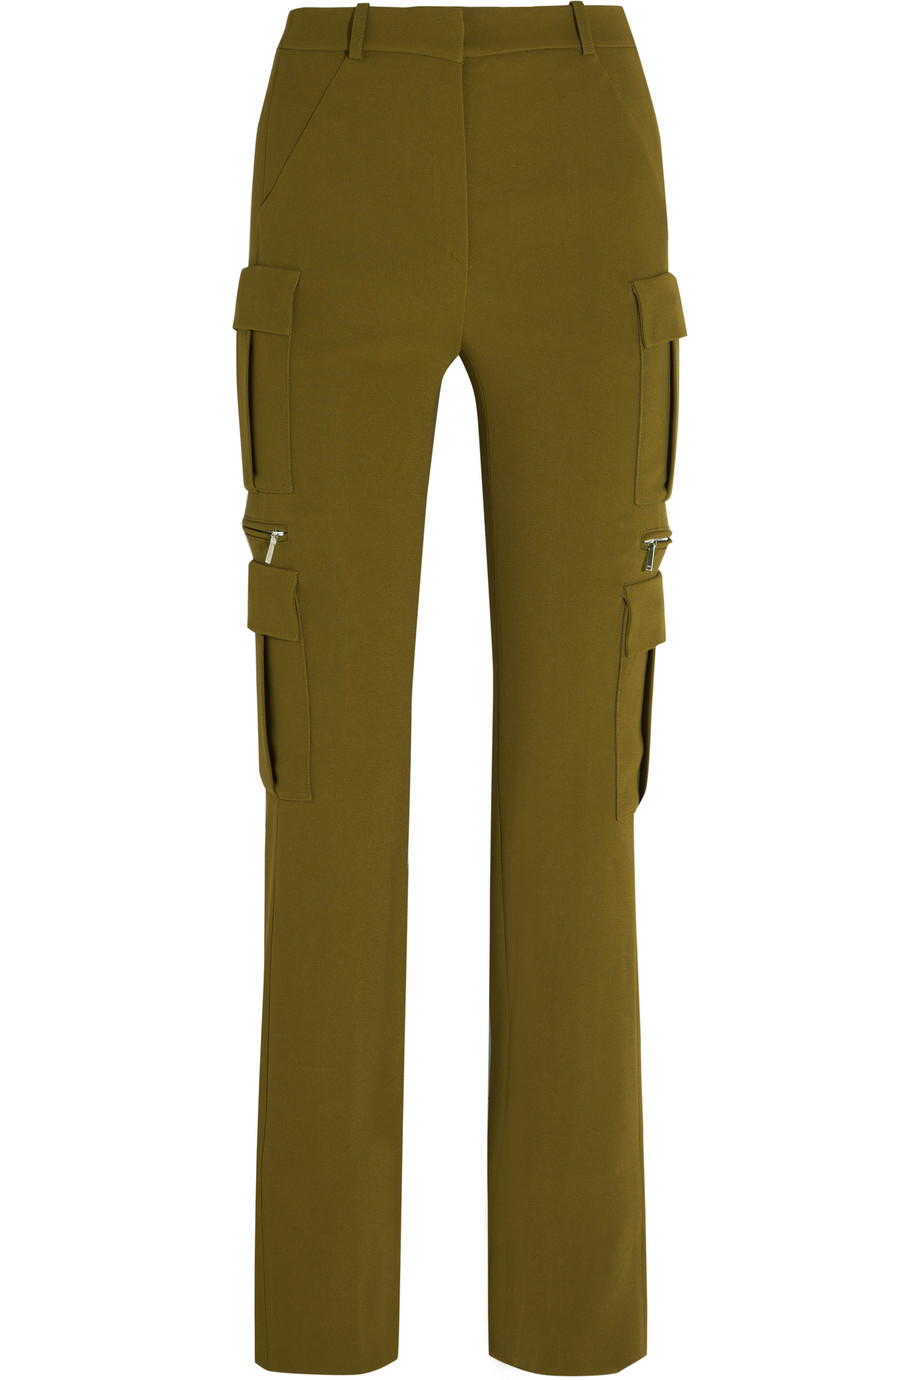 Mugler Stretch-Crepe Skinny Pants, Army Green, Women's, Size: 36